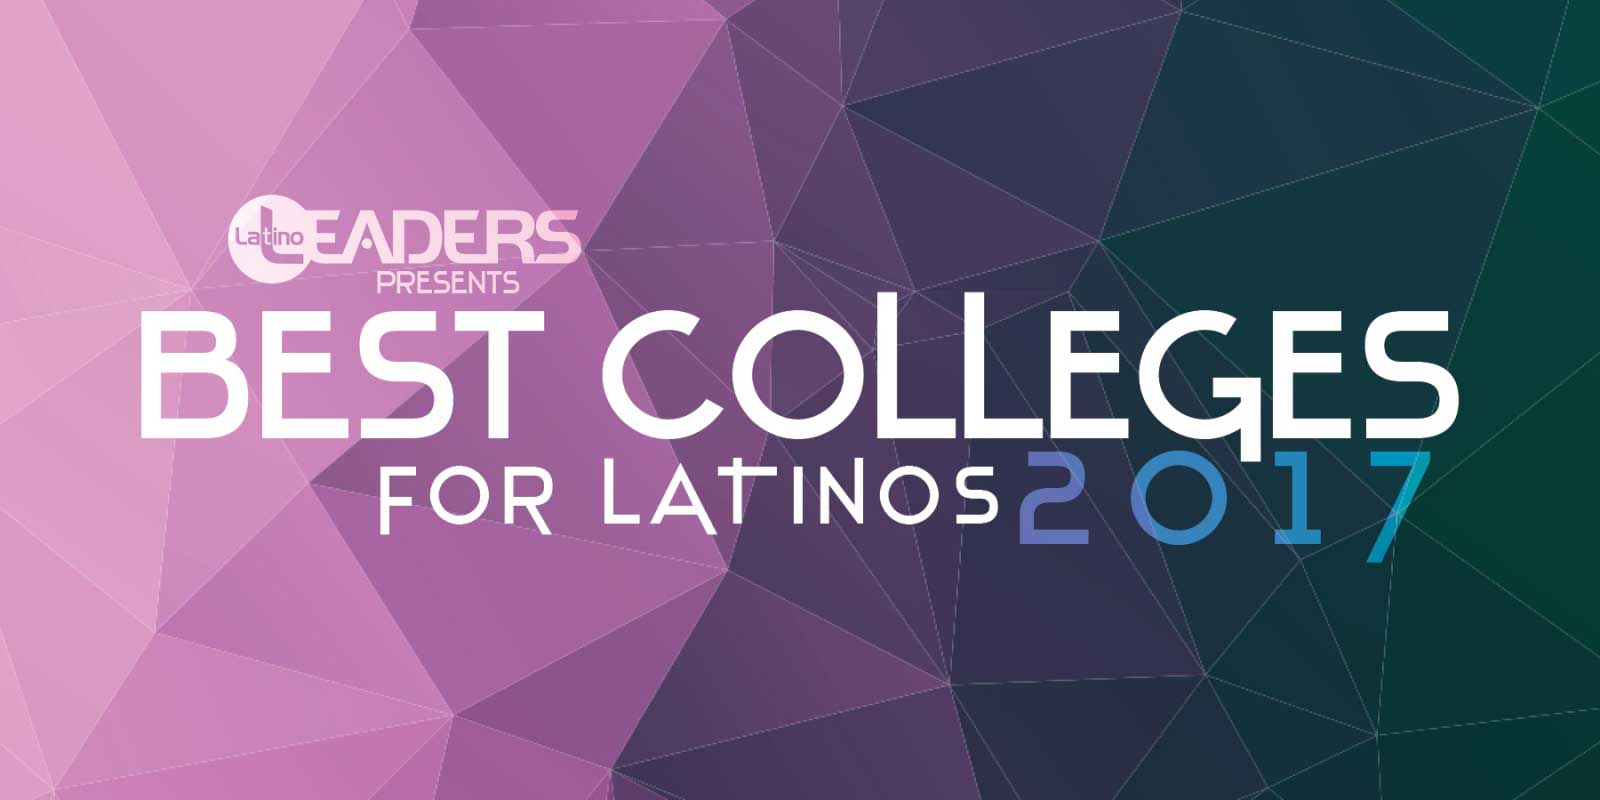 Banner for Latino Leaders Magazine Presents: Best Colleges for Latinos